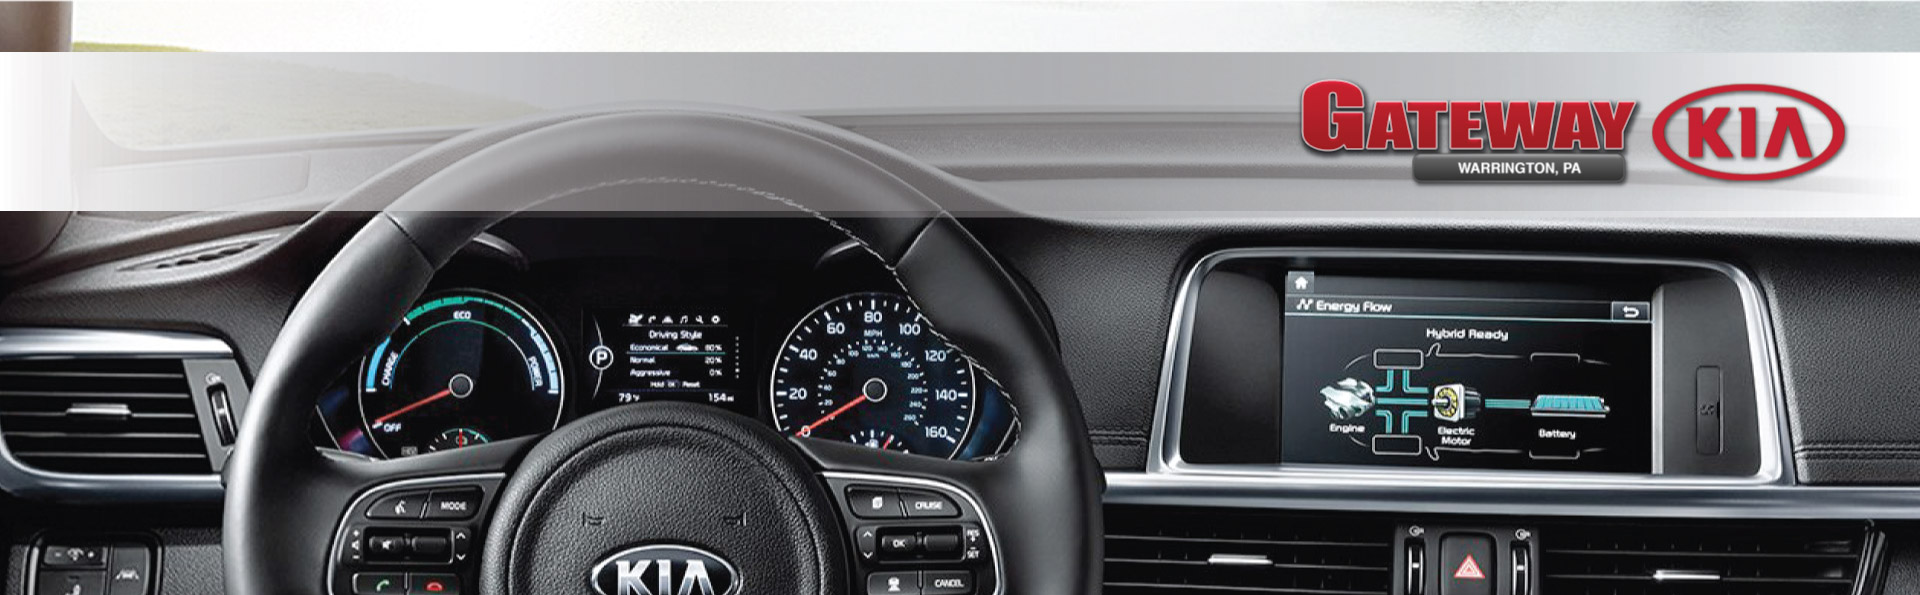 Warrington Kia Service Tips: Shift Before Ready